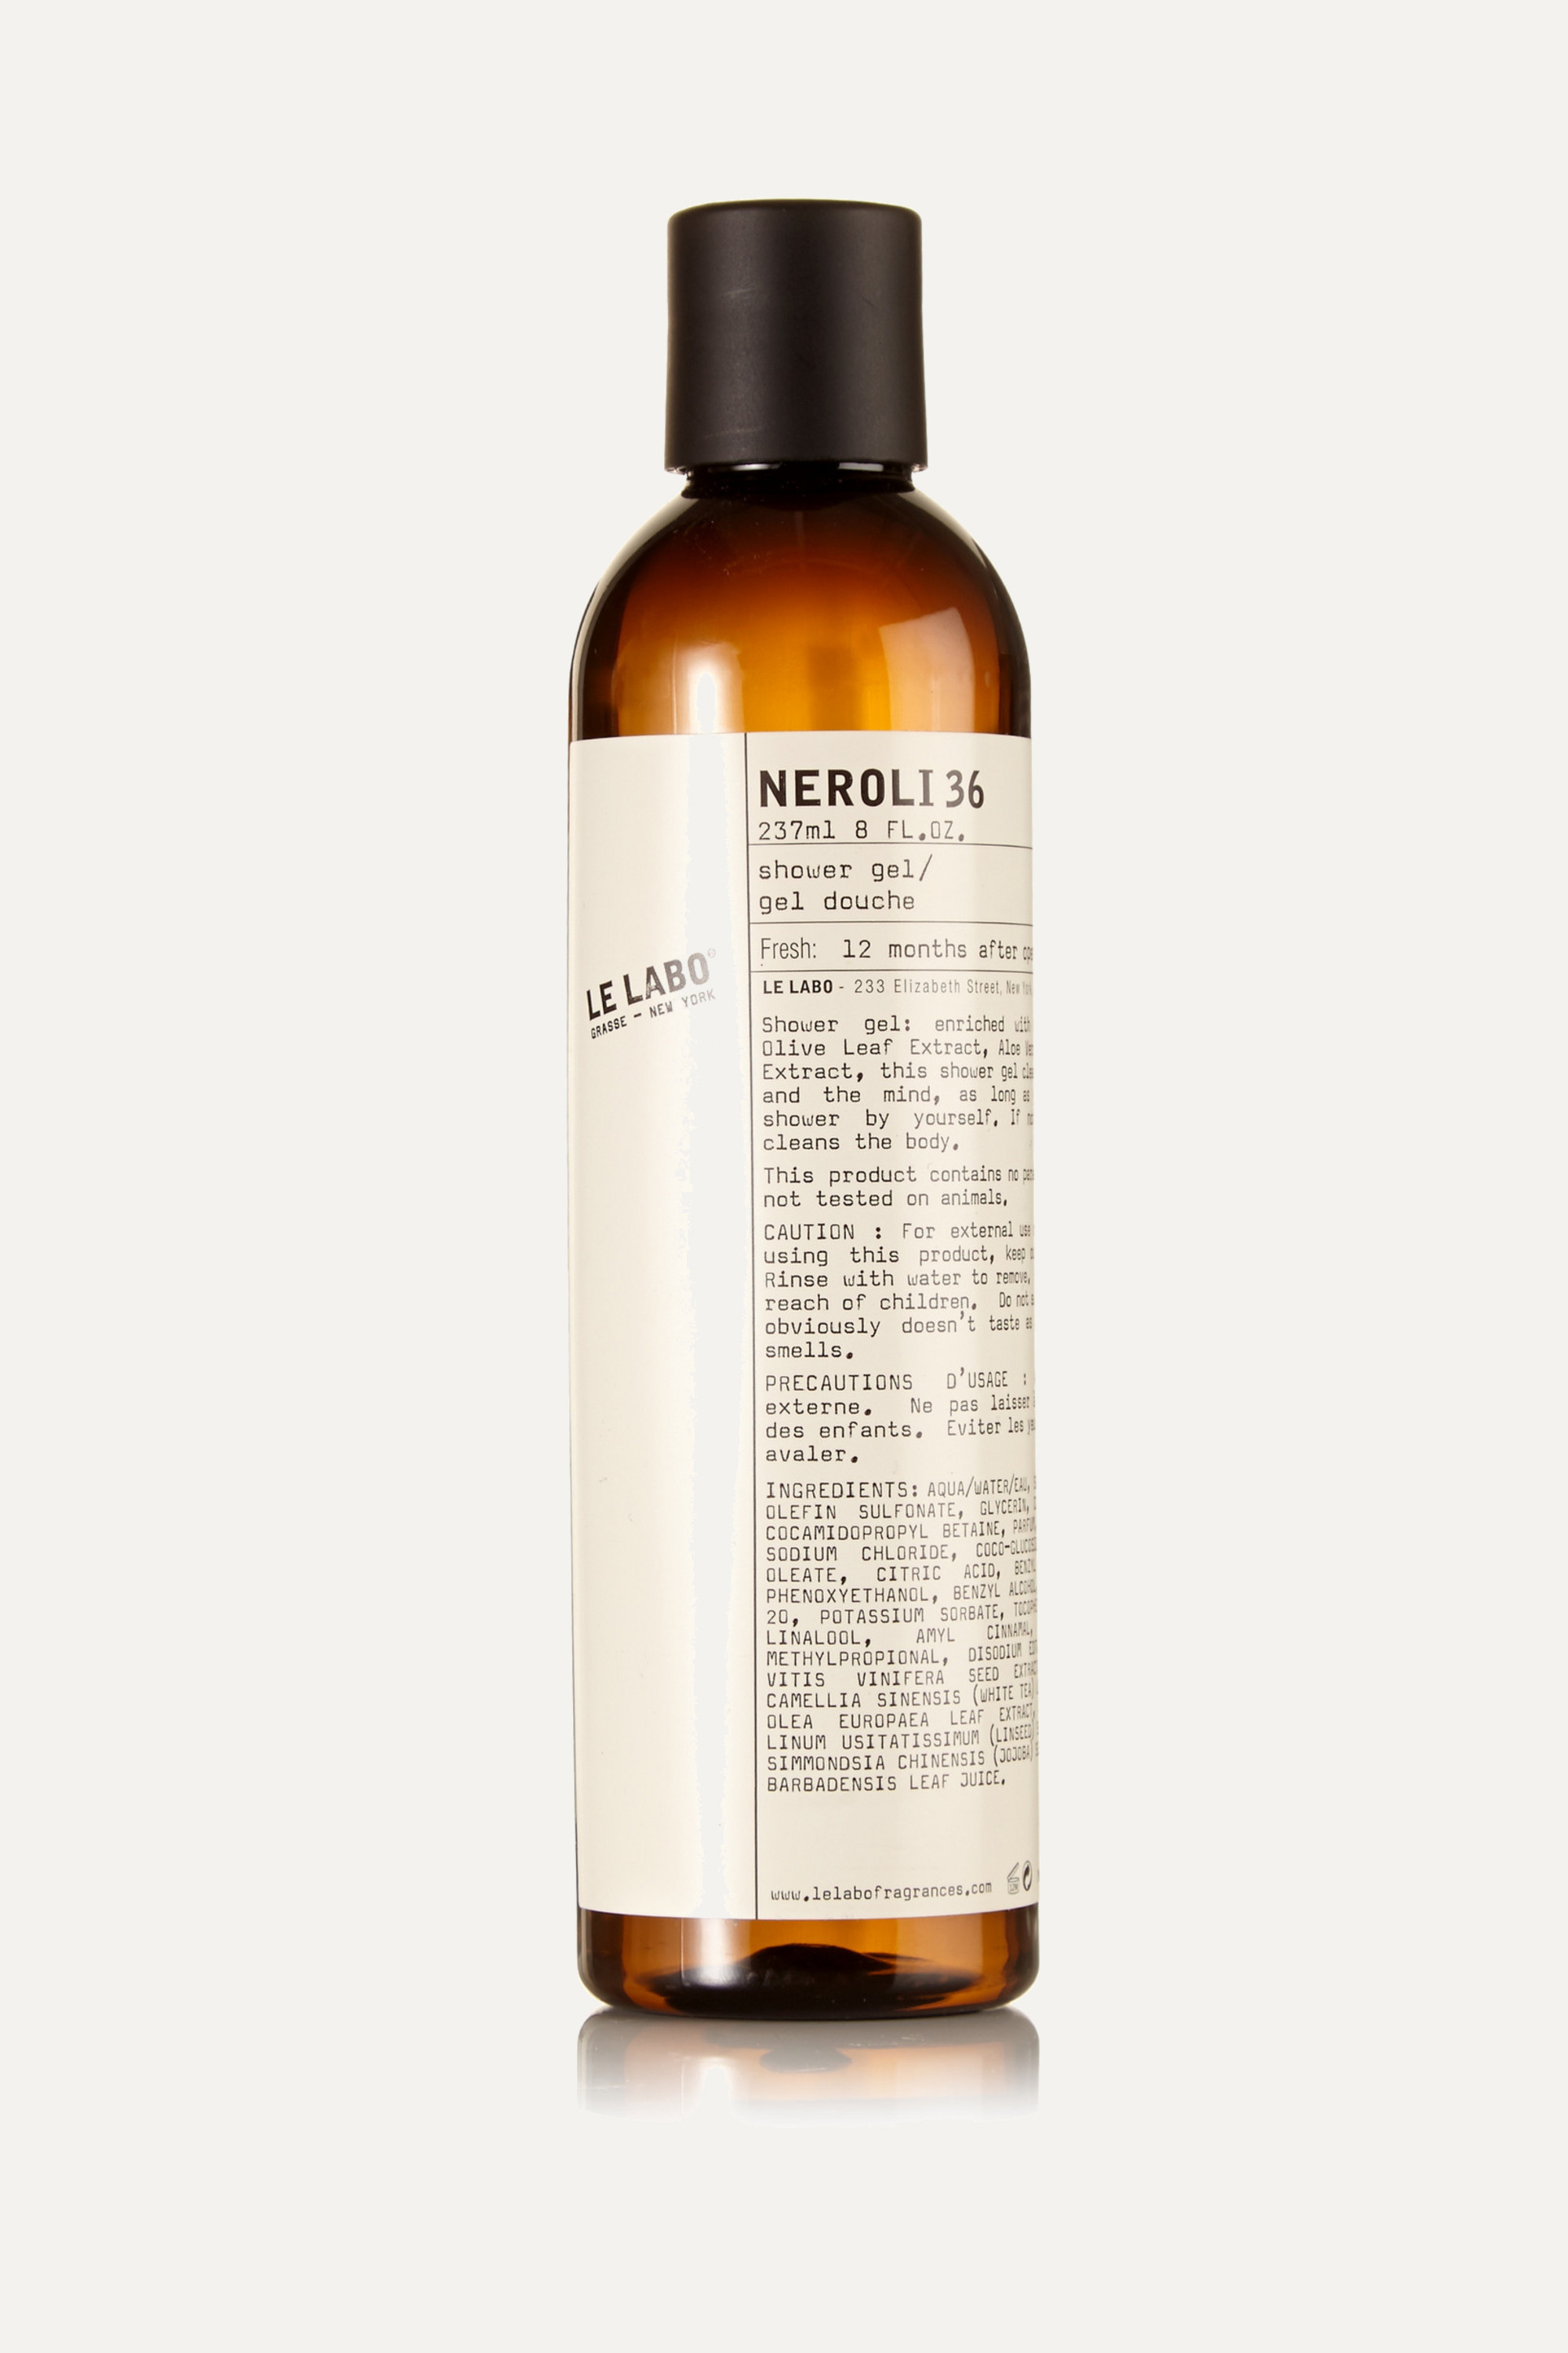 Le Labo Neroli 36 Shower Gel, 237 ml – Duschgel